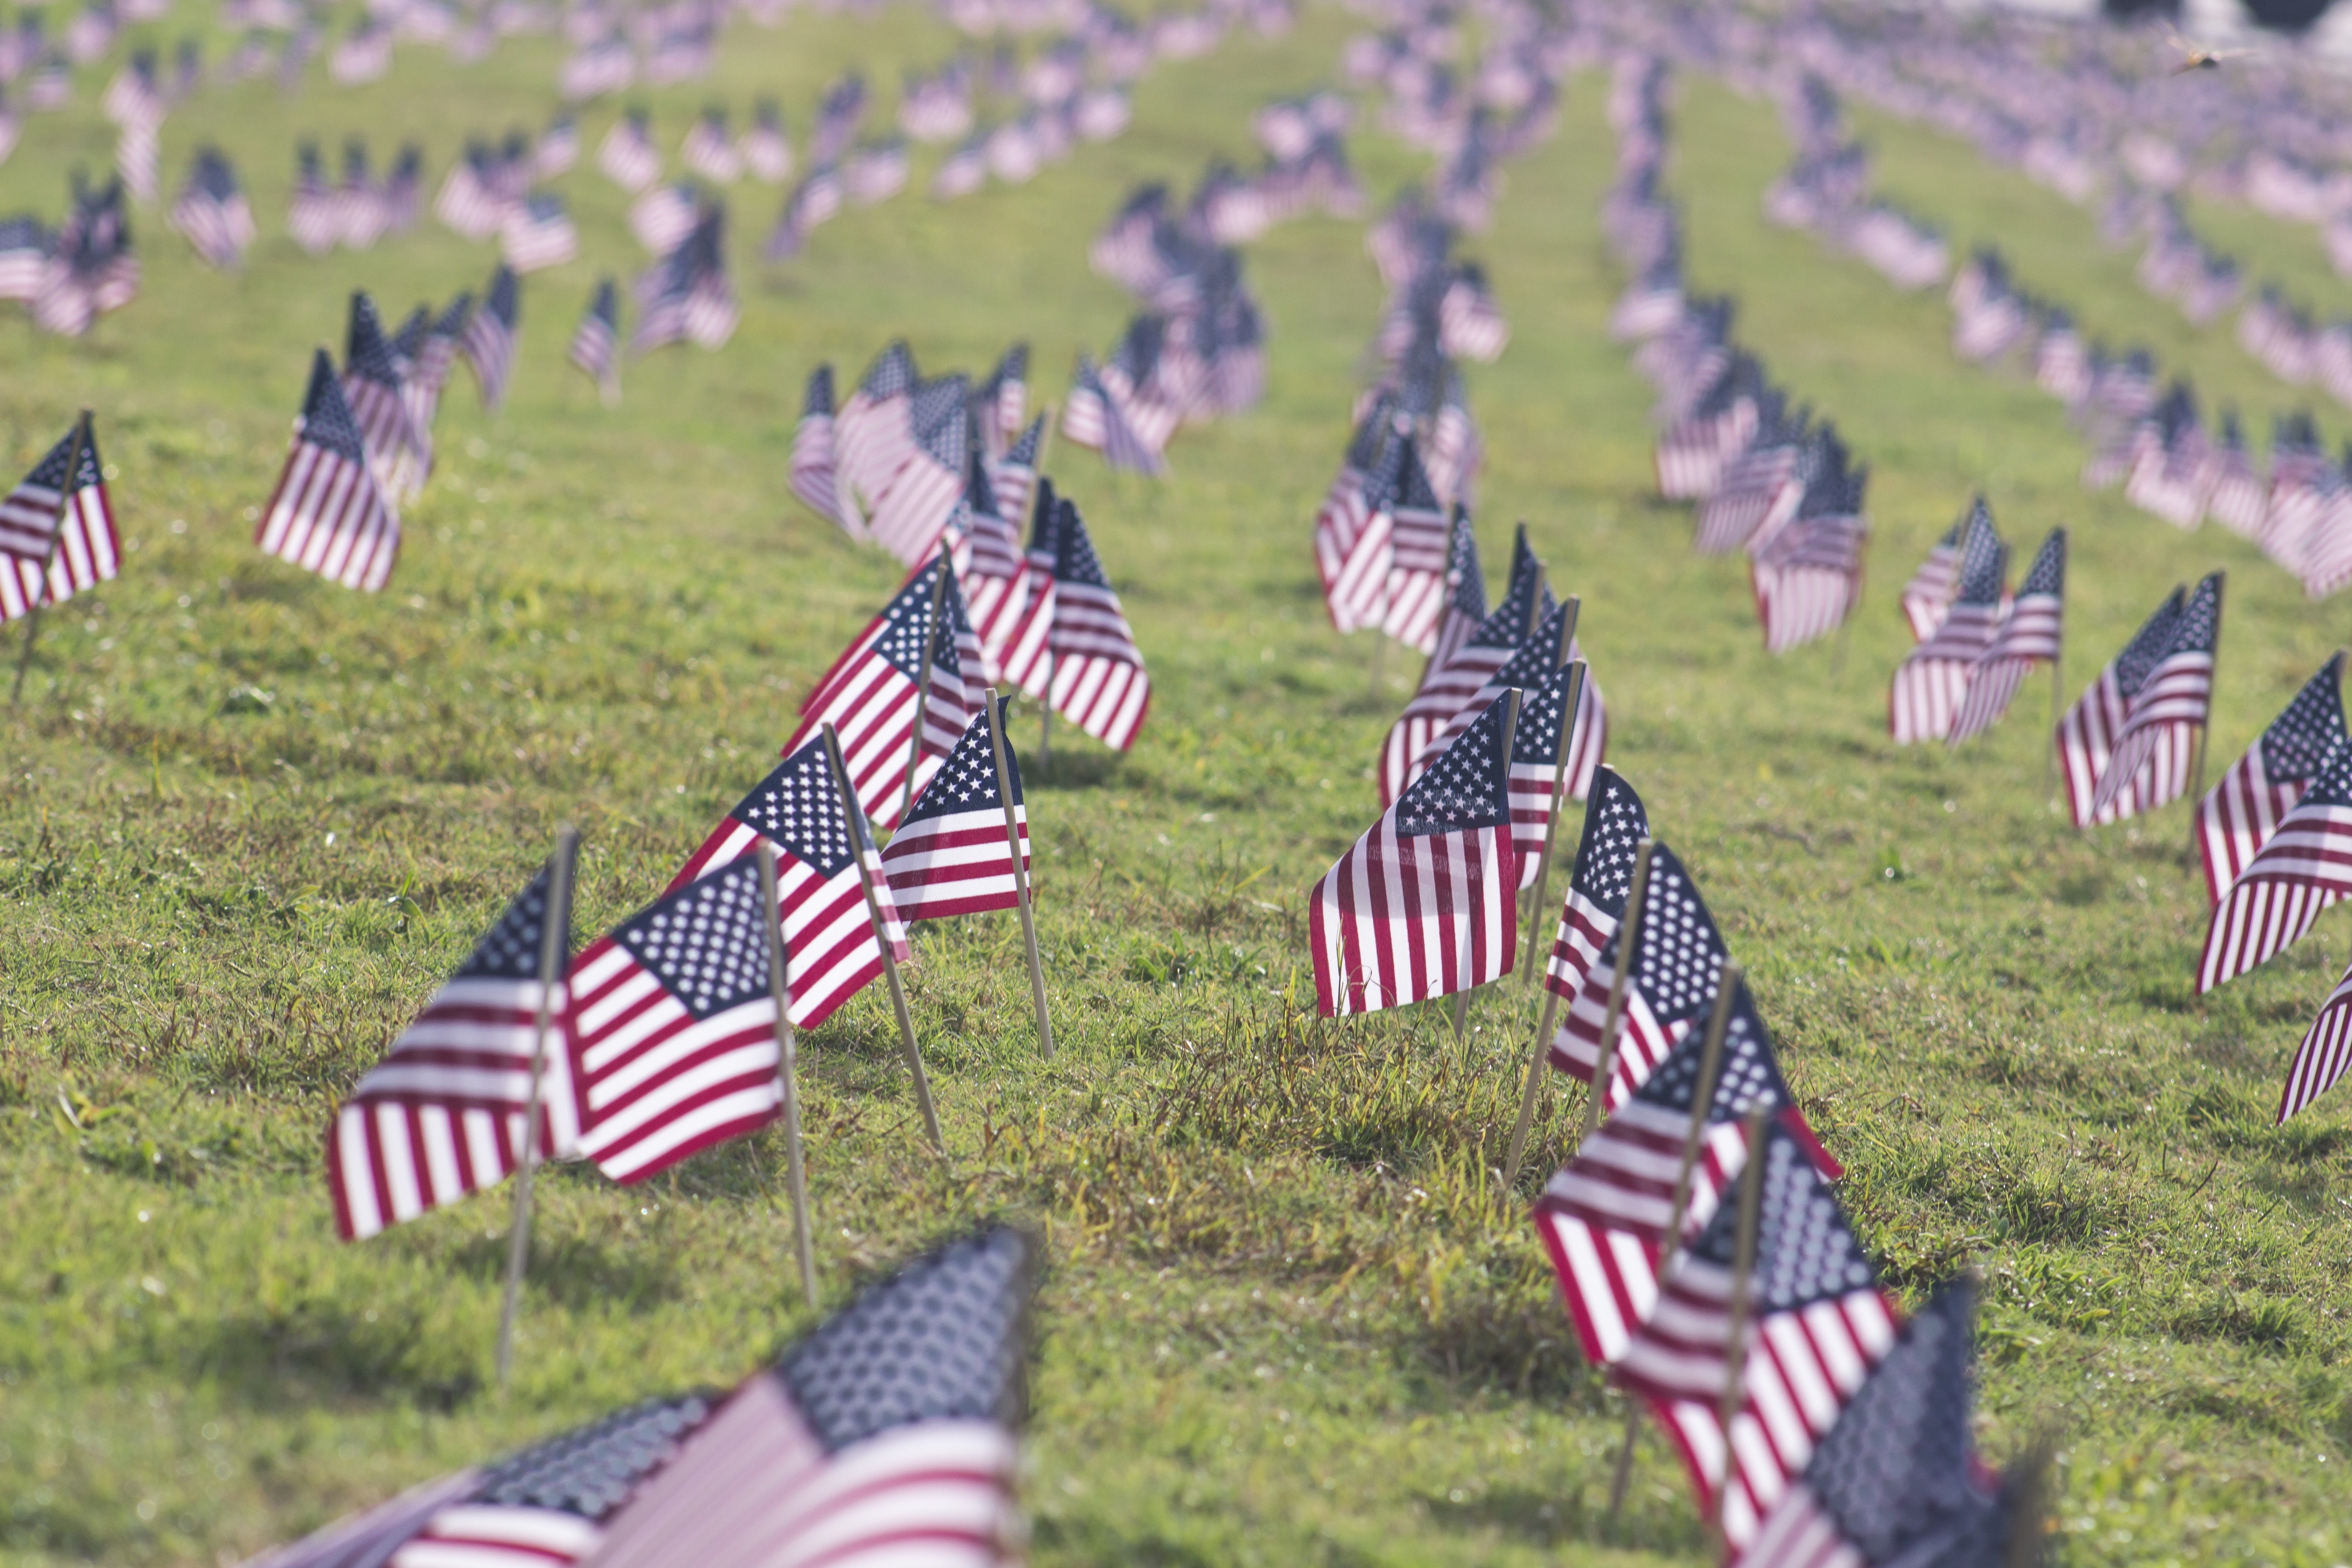 Verturo Construction wishes you a safe Memorial Day